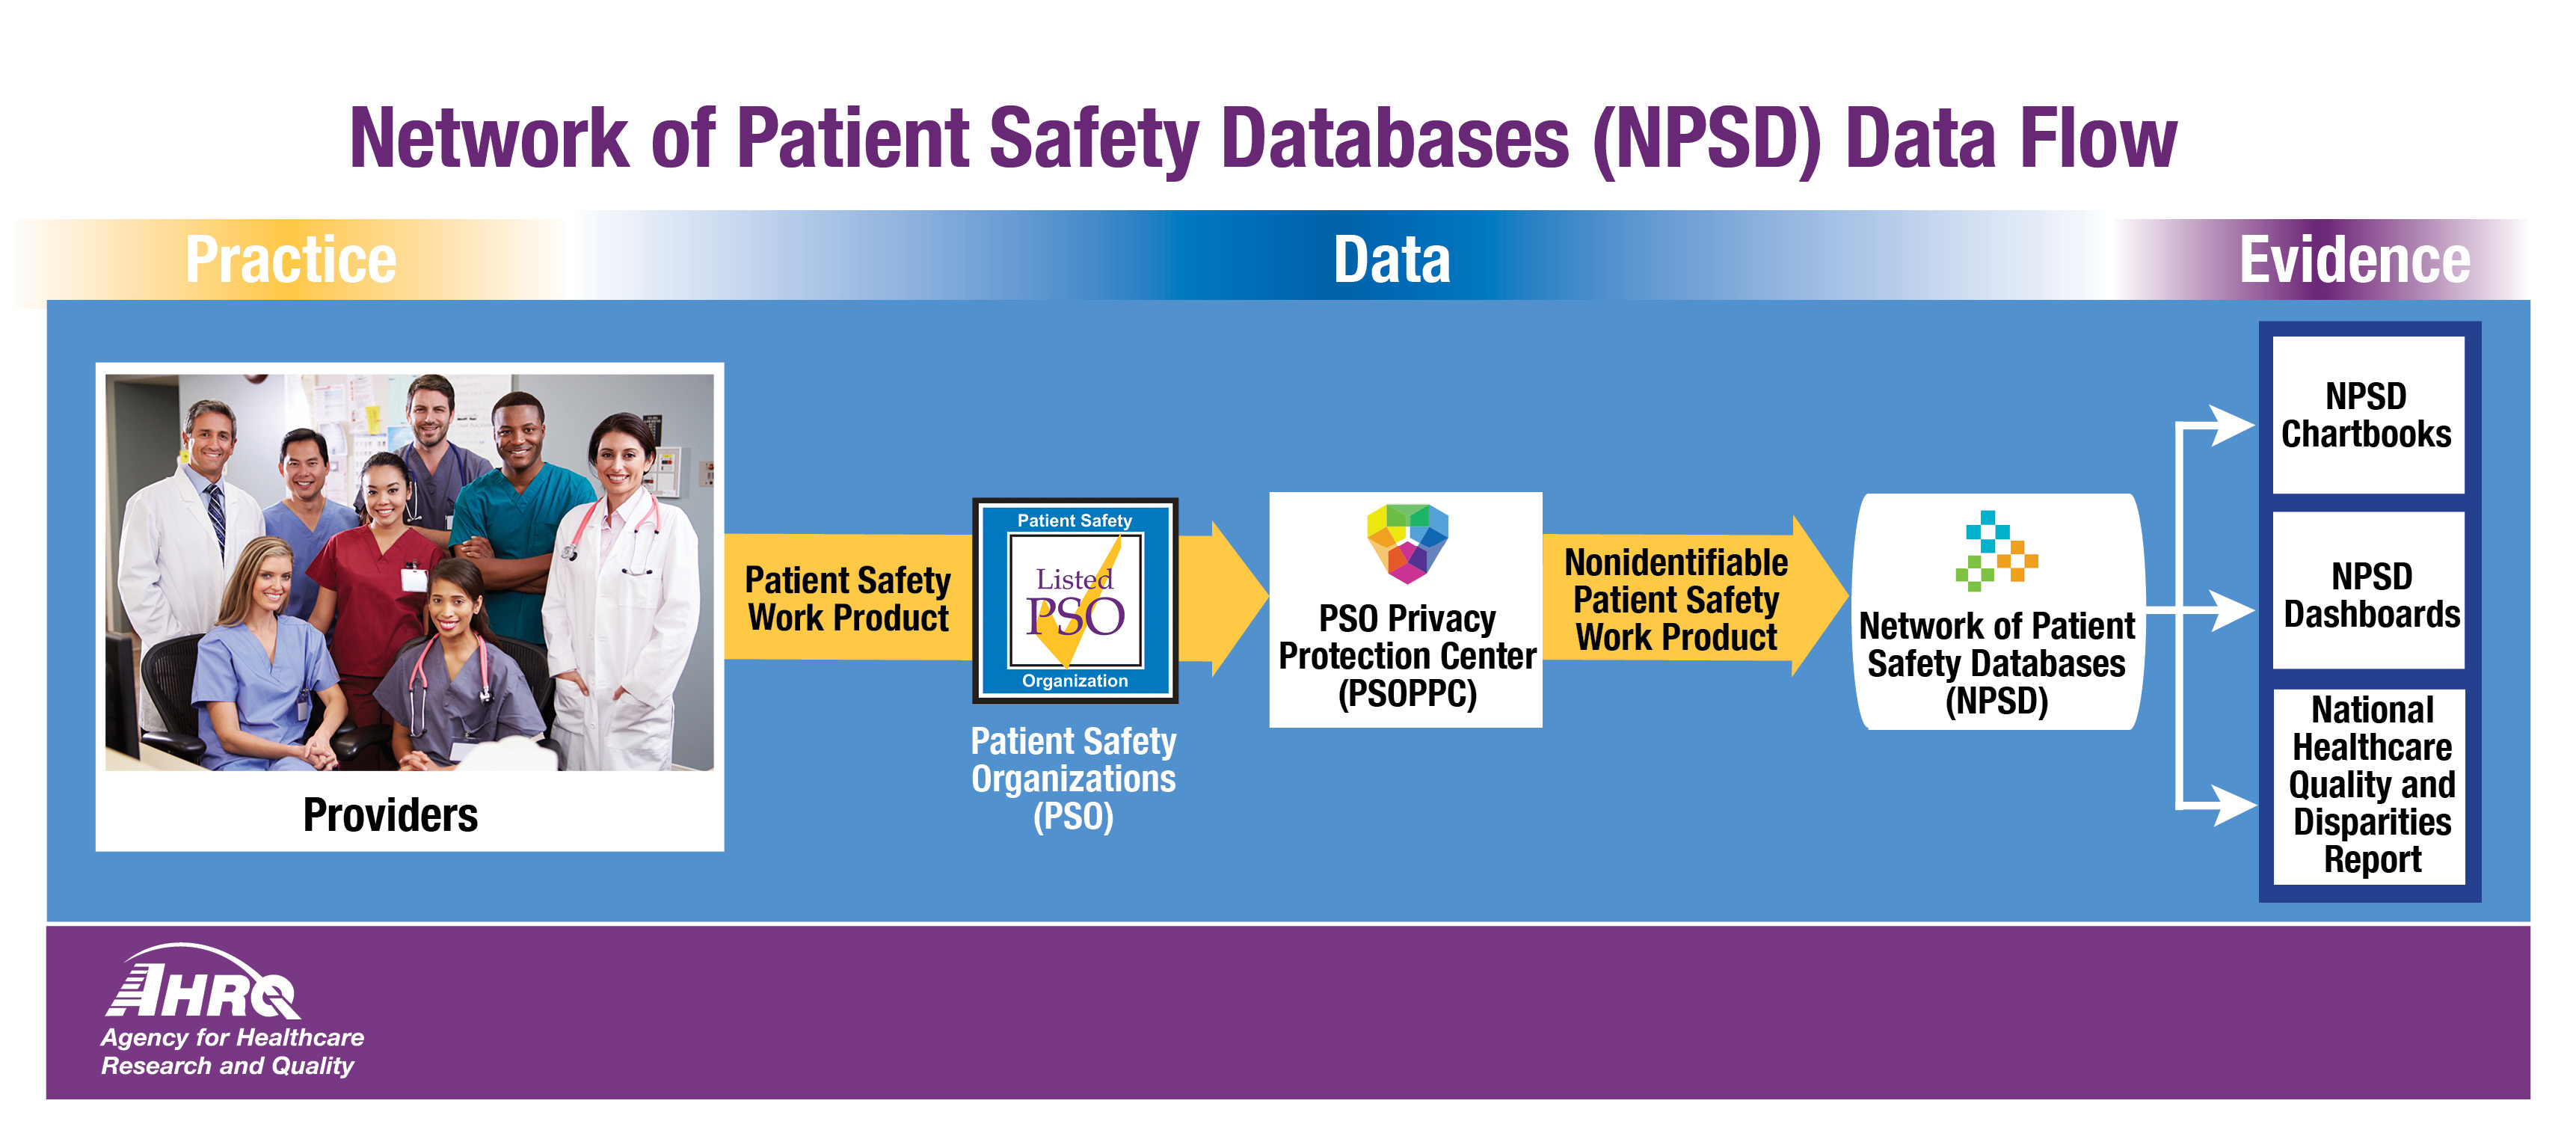 This horizontal graphic shows the Network of Patient Safety Databases (NPSD) Data Flow. Practices and providers provide Patient Safety Work Product (PSWP) to Patient Safety Organizations (PSOs). The PSOs send the  Patient Safety Work Product to the PSO Privacy Protection Center (PSOPPC), which sends the now nonidentifiable Patient Safety Work Product  to the Network of Patient Safety Databases (NPSD), where the data is compiled into an NPSD Chartbook, NPSD Dashboards, and the National Healthcare Quality and Disparity Report.